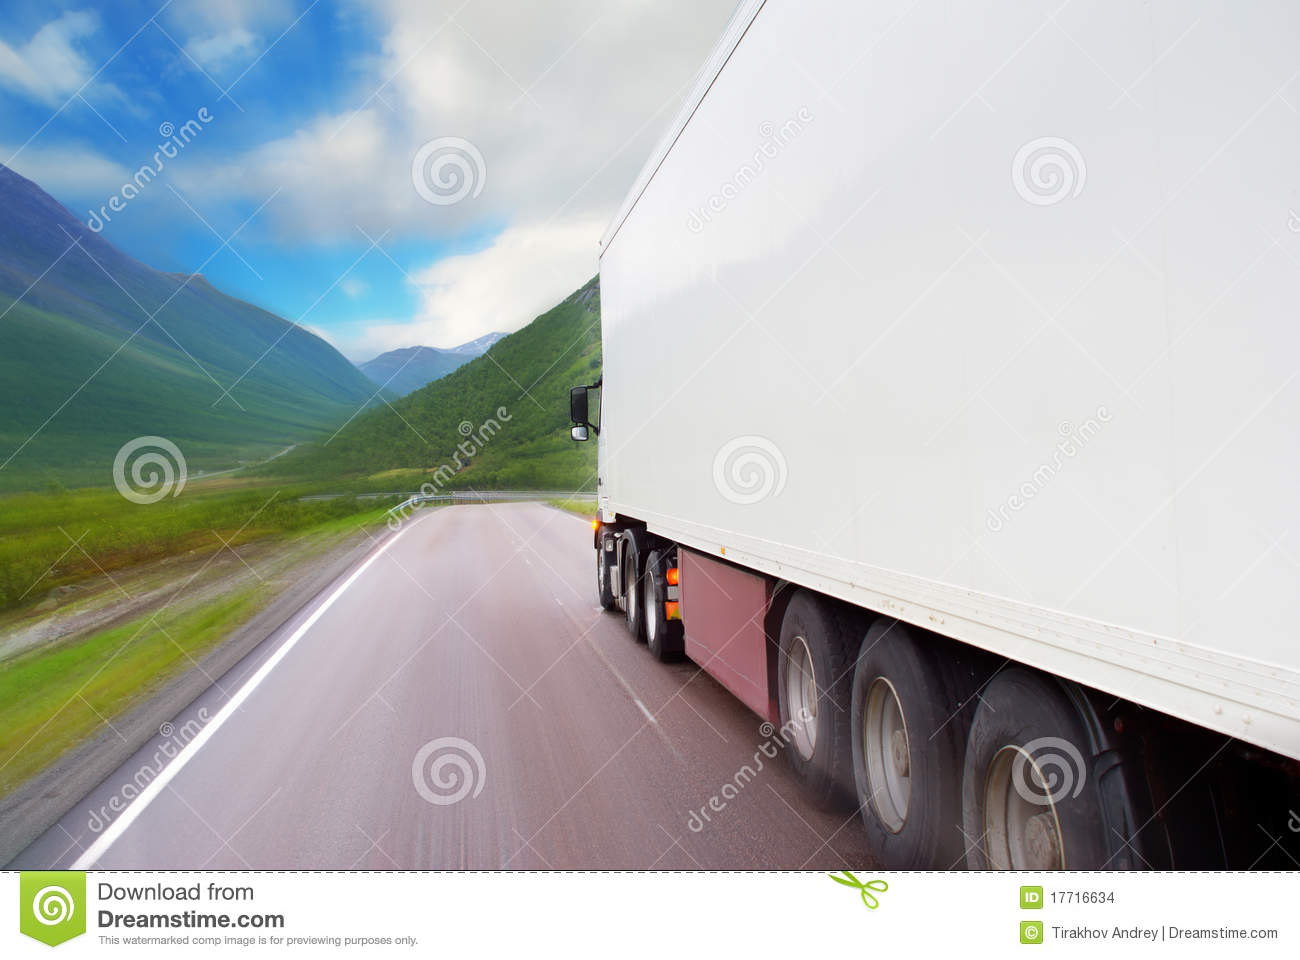 supply chain management terms and fast food/restaurant essay Parliament of whores  tells us what kind of gasoline we can buy for our cars and how fast we  the democrats said destroy the supply of a ffordable housing.